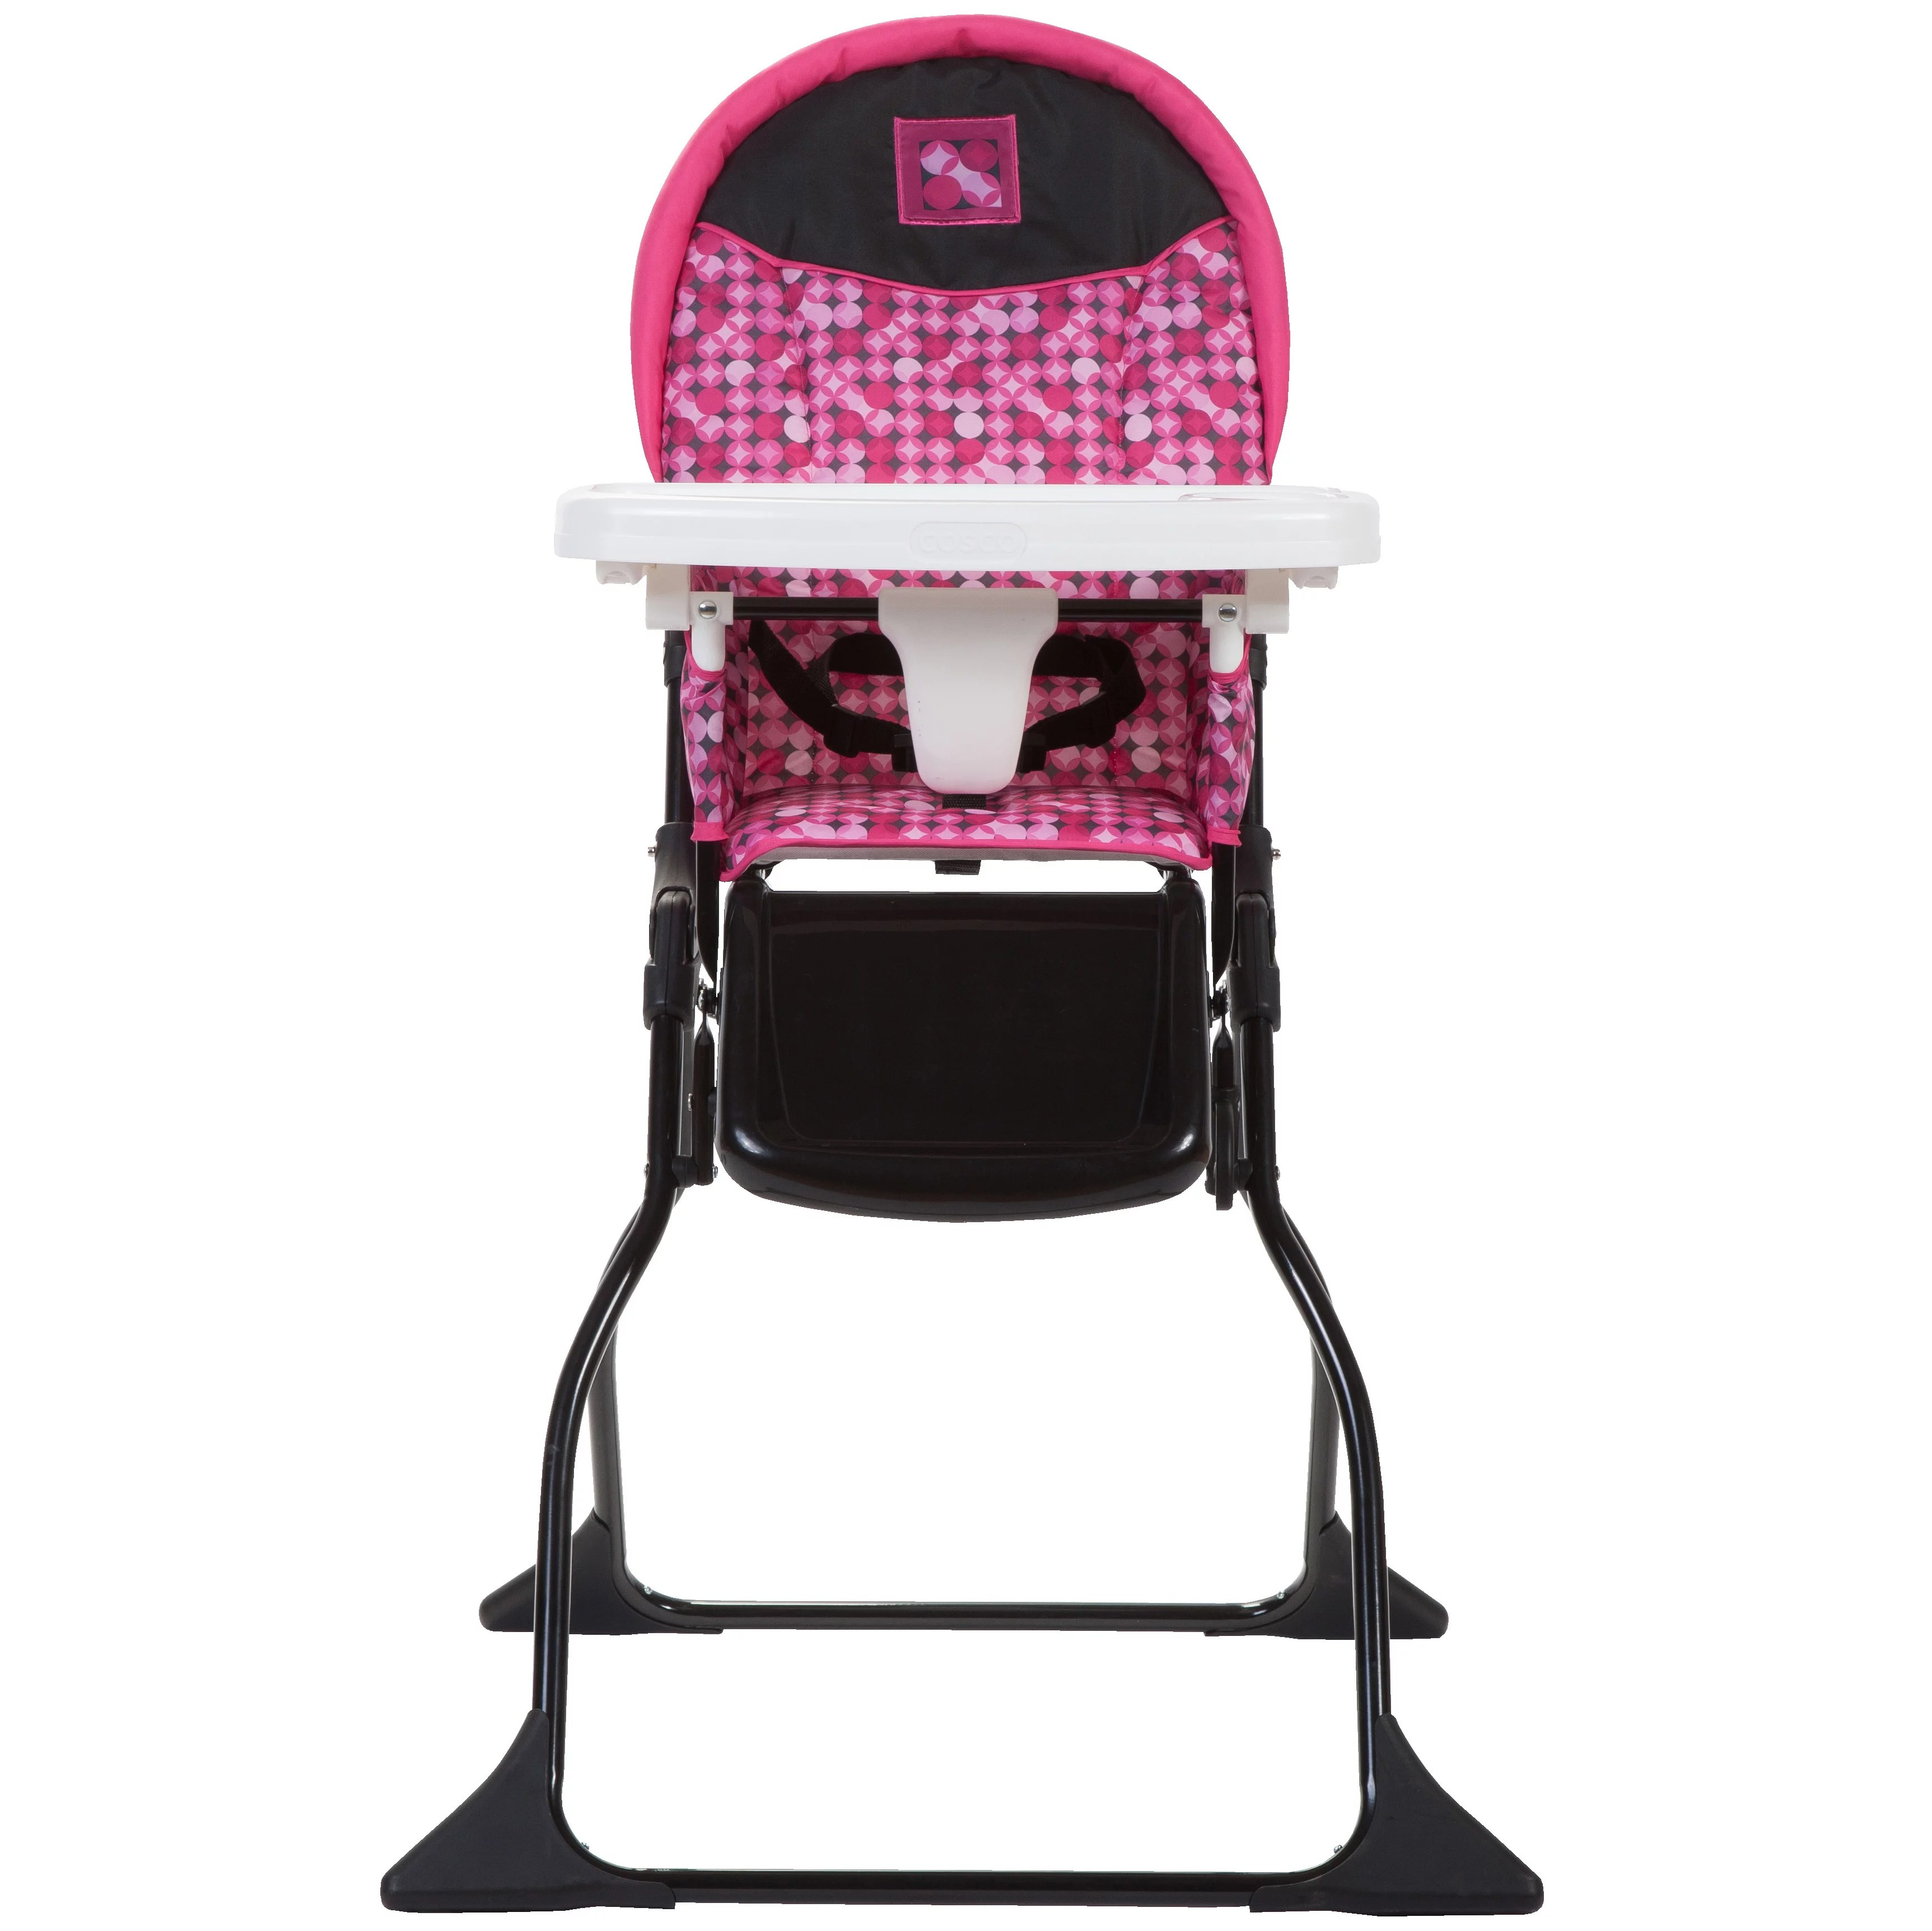 fold out chairs walmart nail salon uk cosco disco ball berry high chair and playard value set